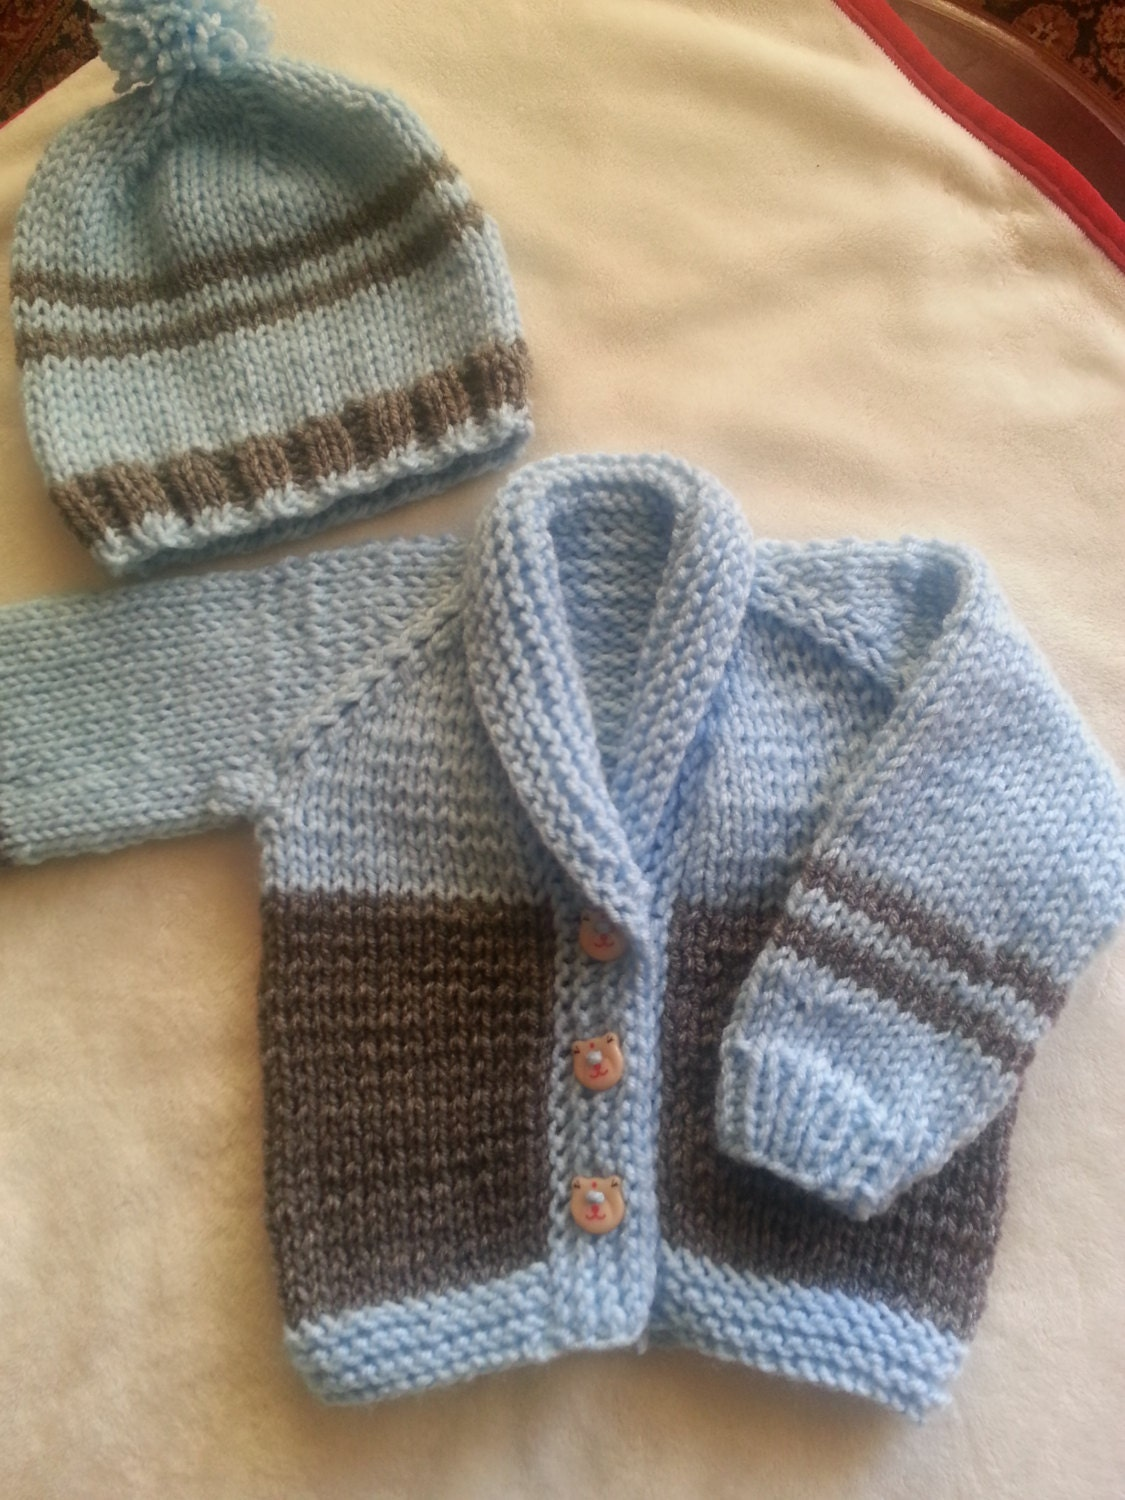 Handmade Knitted Sweater Cardigan Reserved